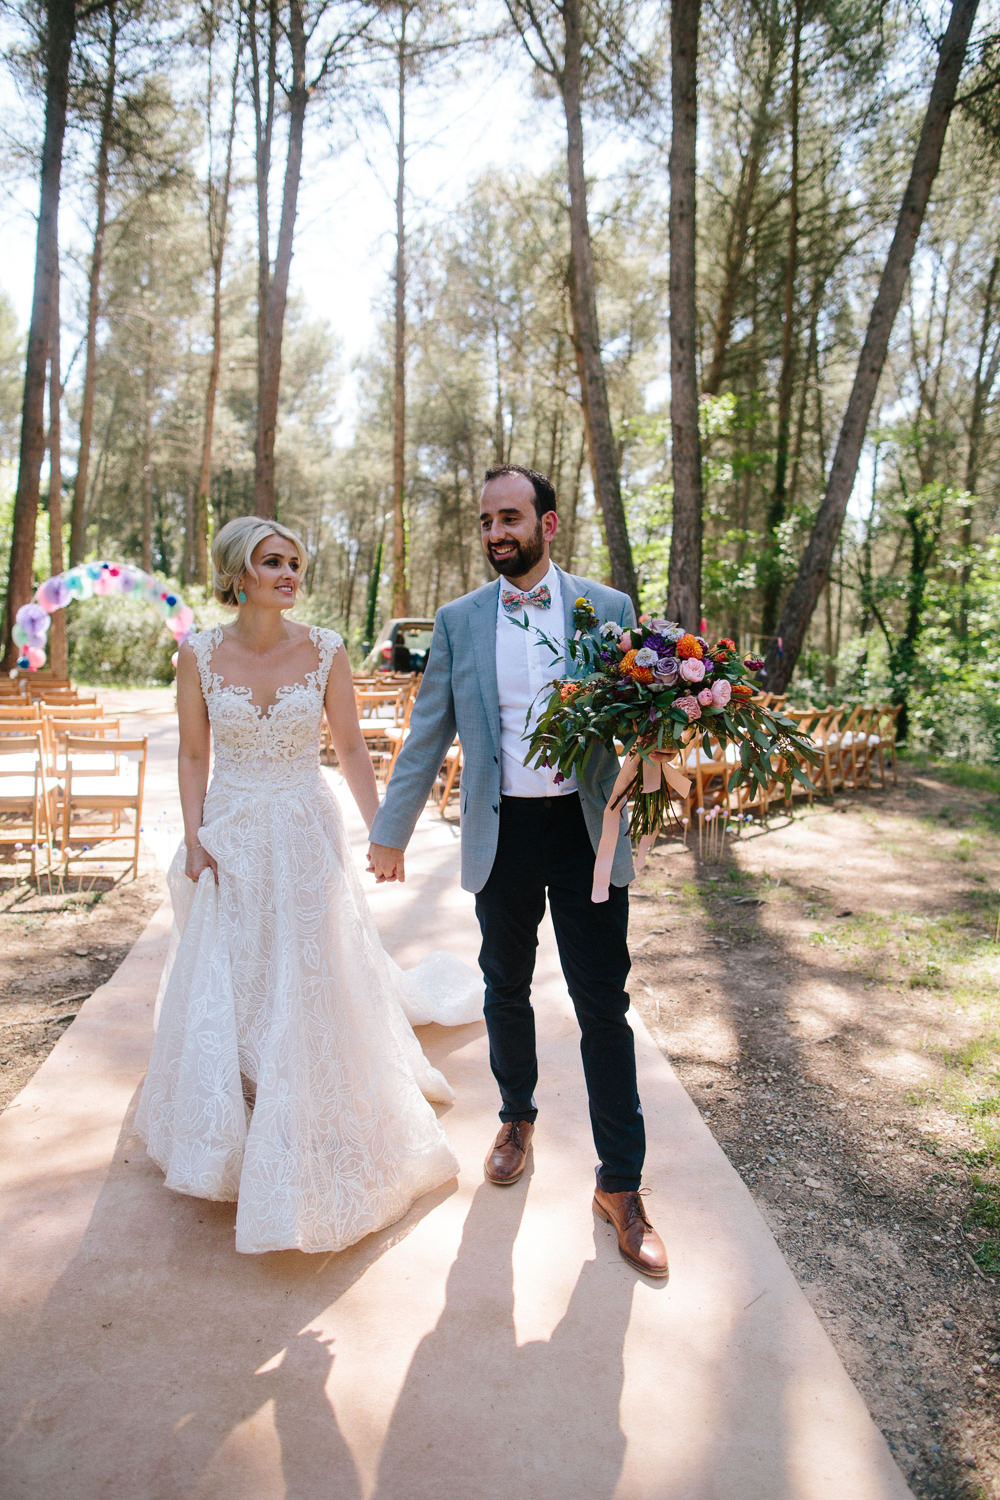 Bride Bridal Lace Strappy Sleeveless Embellished Dress Gown Mismatched Bow Tie Groom Forest Spain Destination Wedding Dan Hough Photography